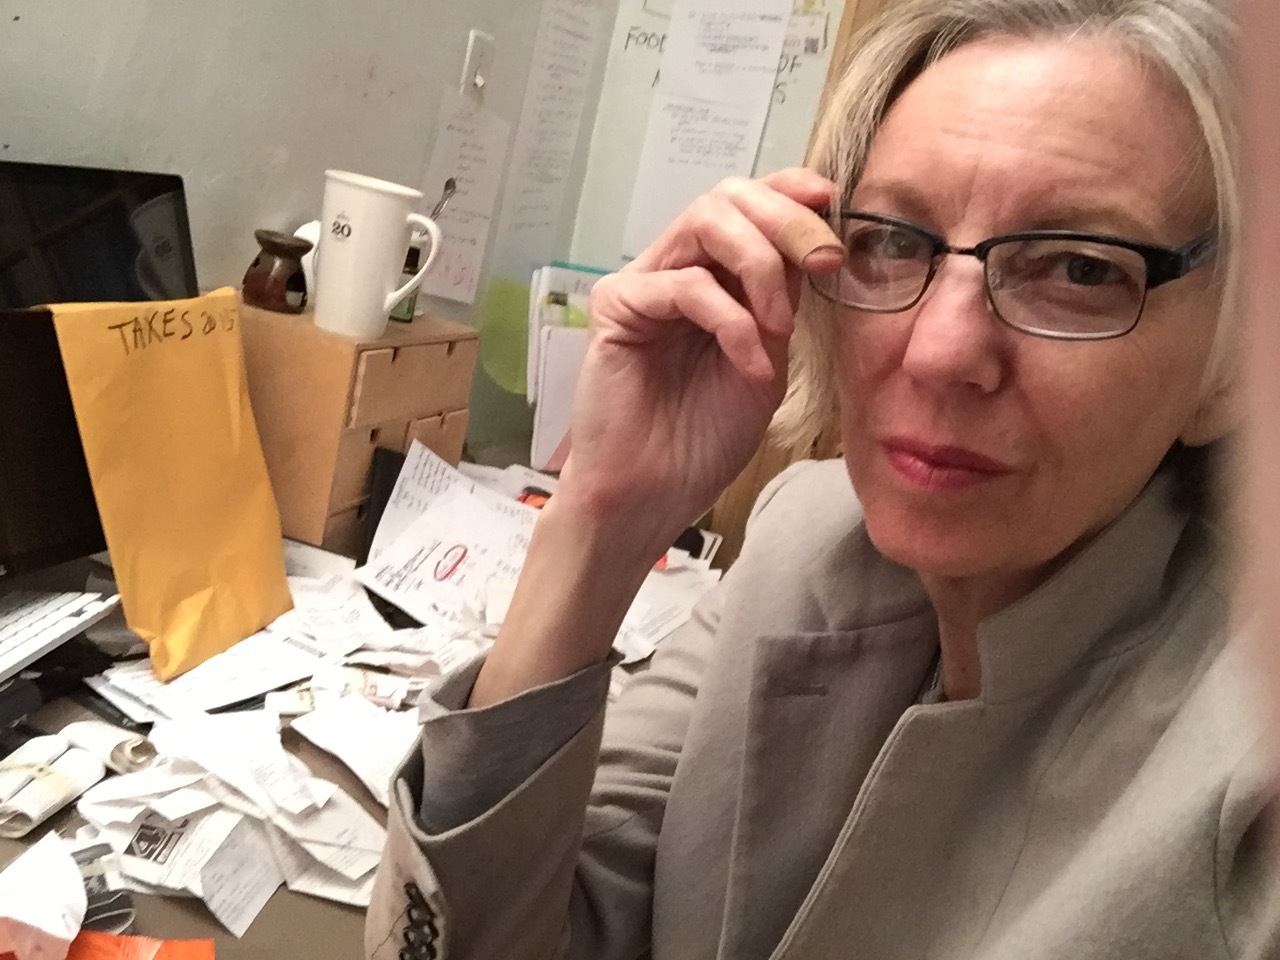 buried in receipts at tax time